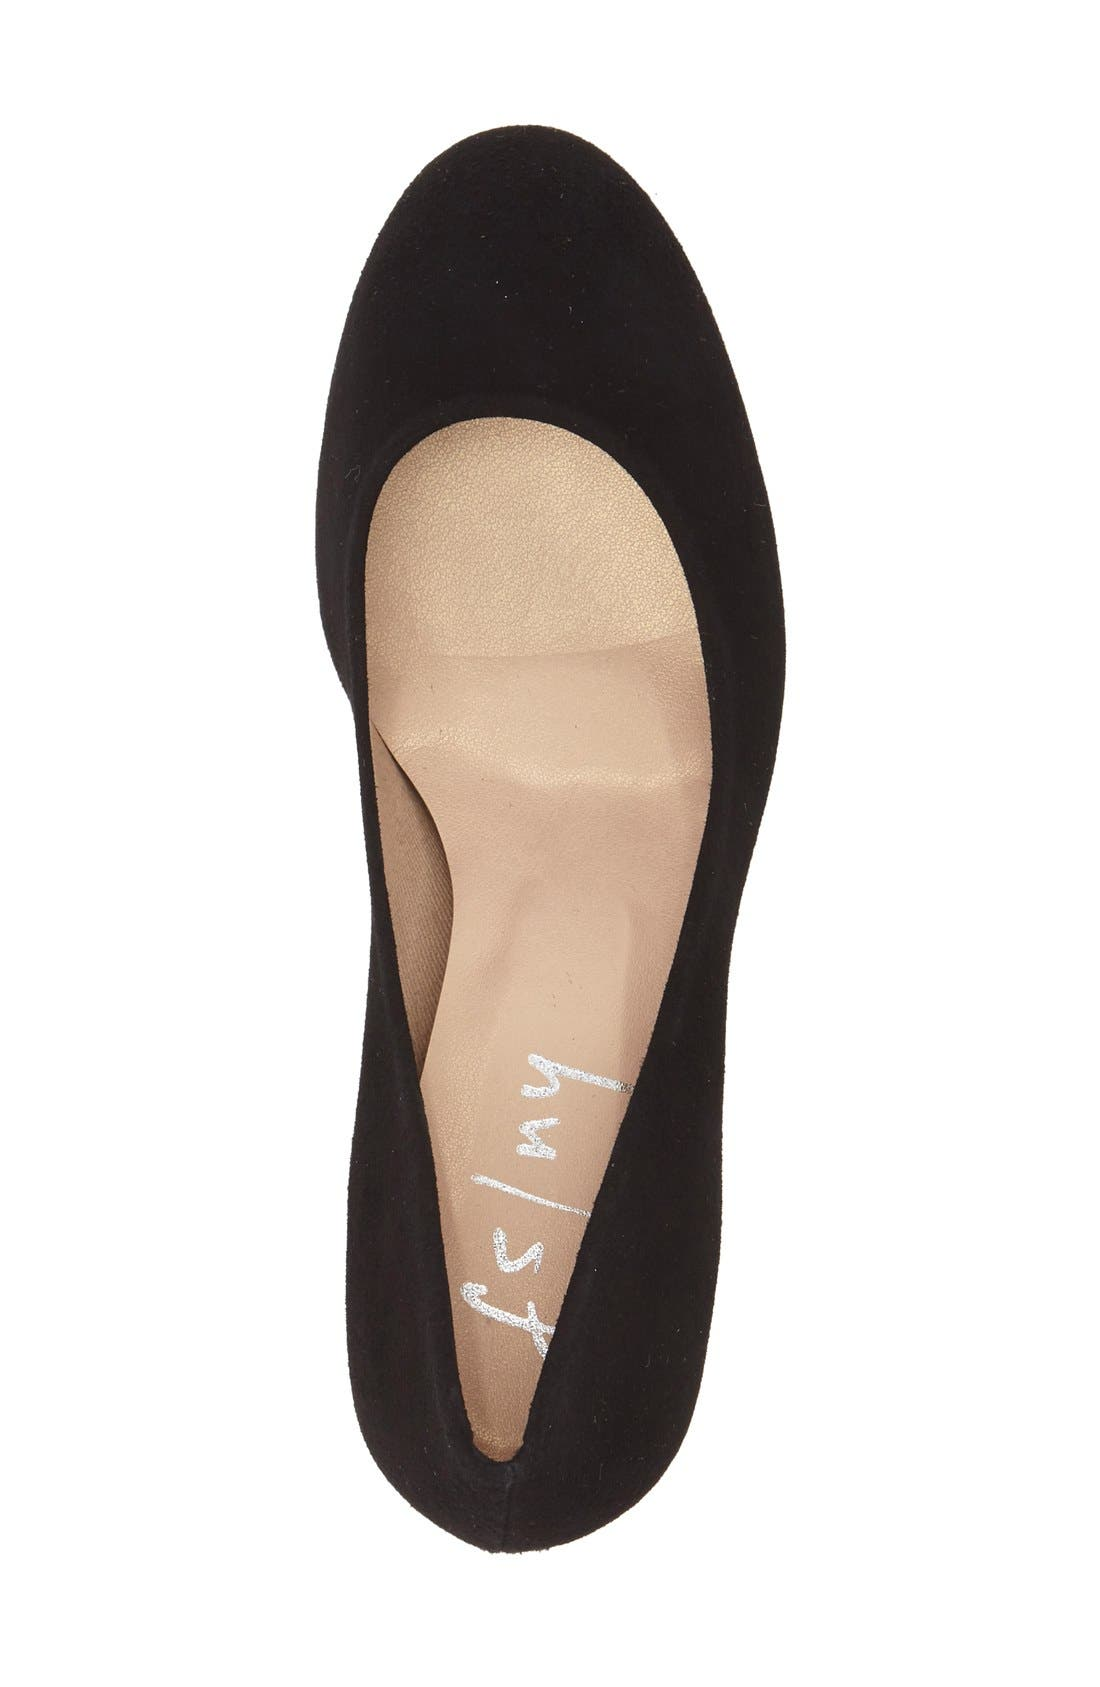 FRENCH SOLE,                             'Trance' Block Heel Pump,                             Alternate thumbnail 3, color,                             001